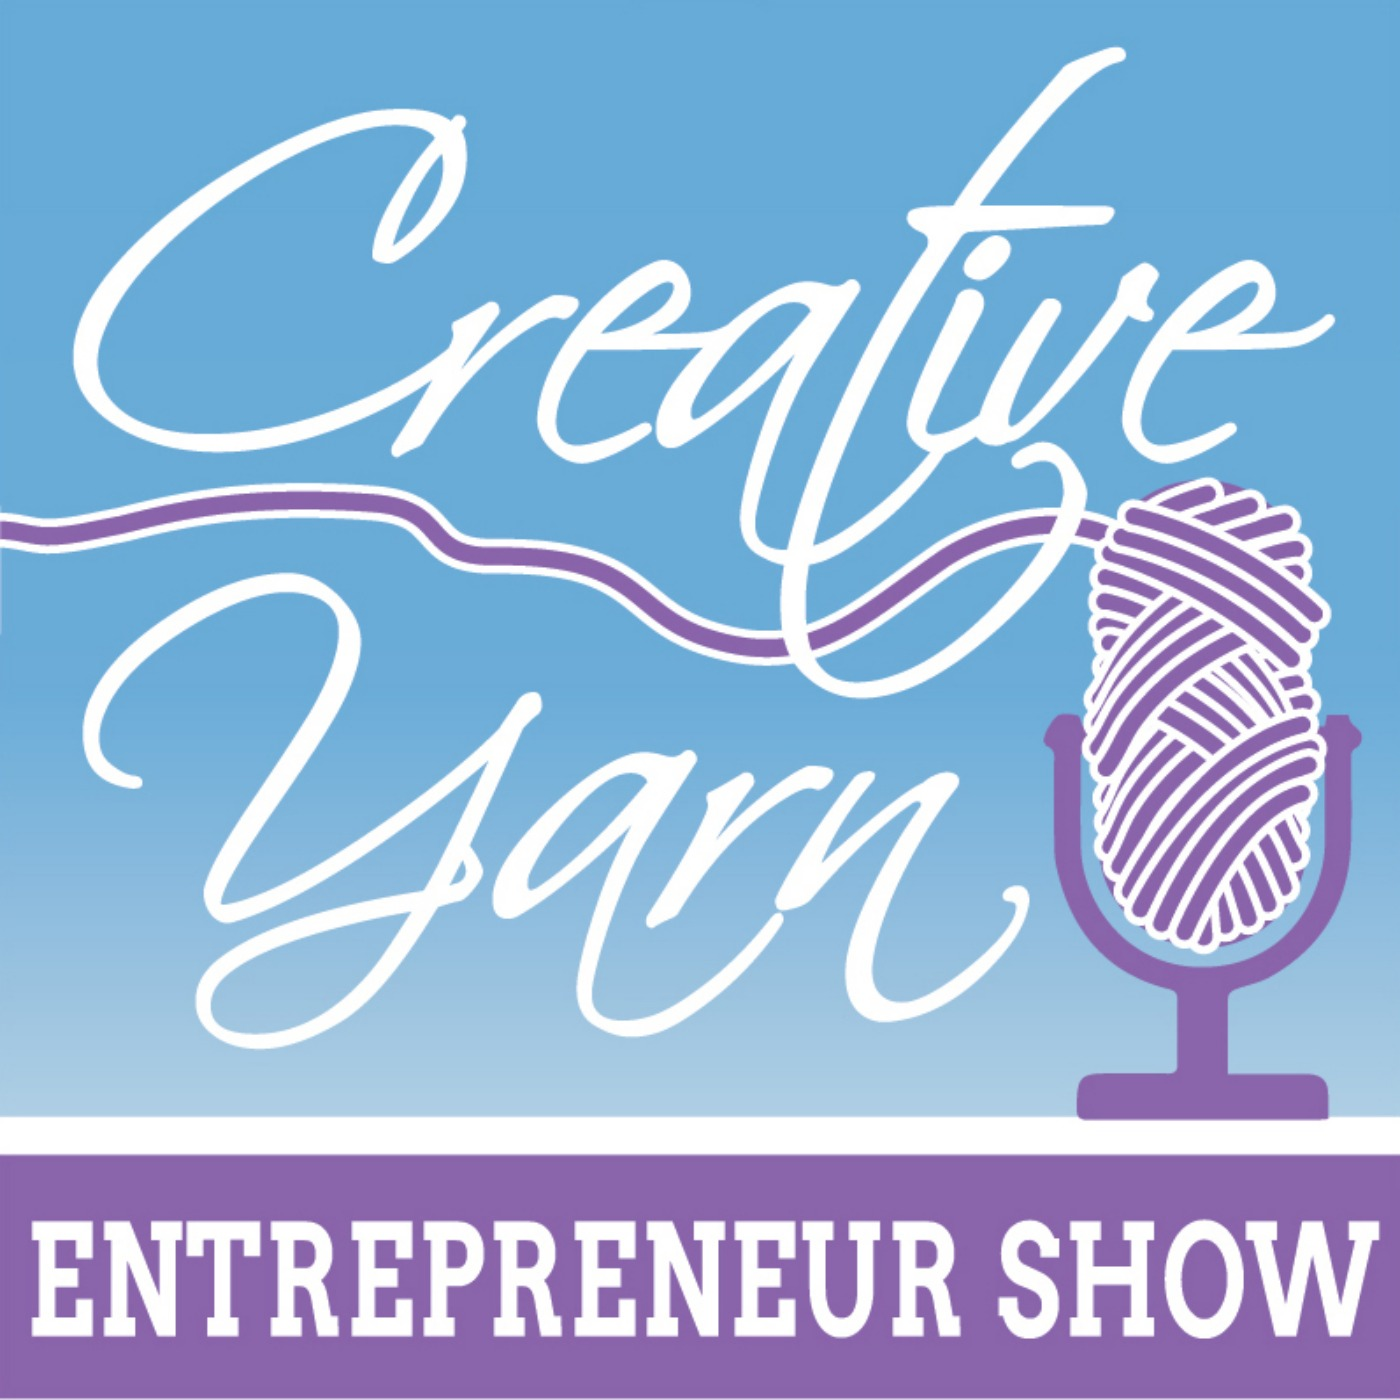 Episode 19: The Failures Episode! - The Creative Yarn Entrepreneur Show